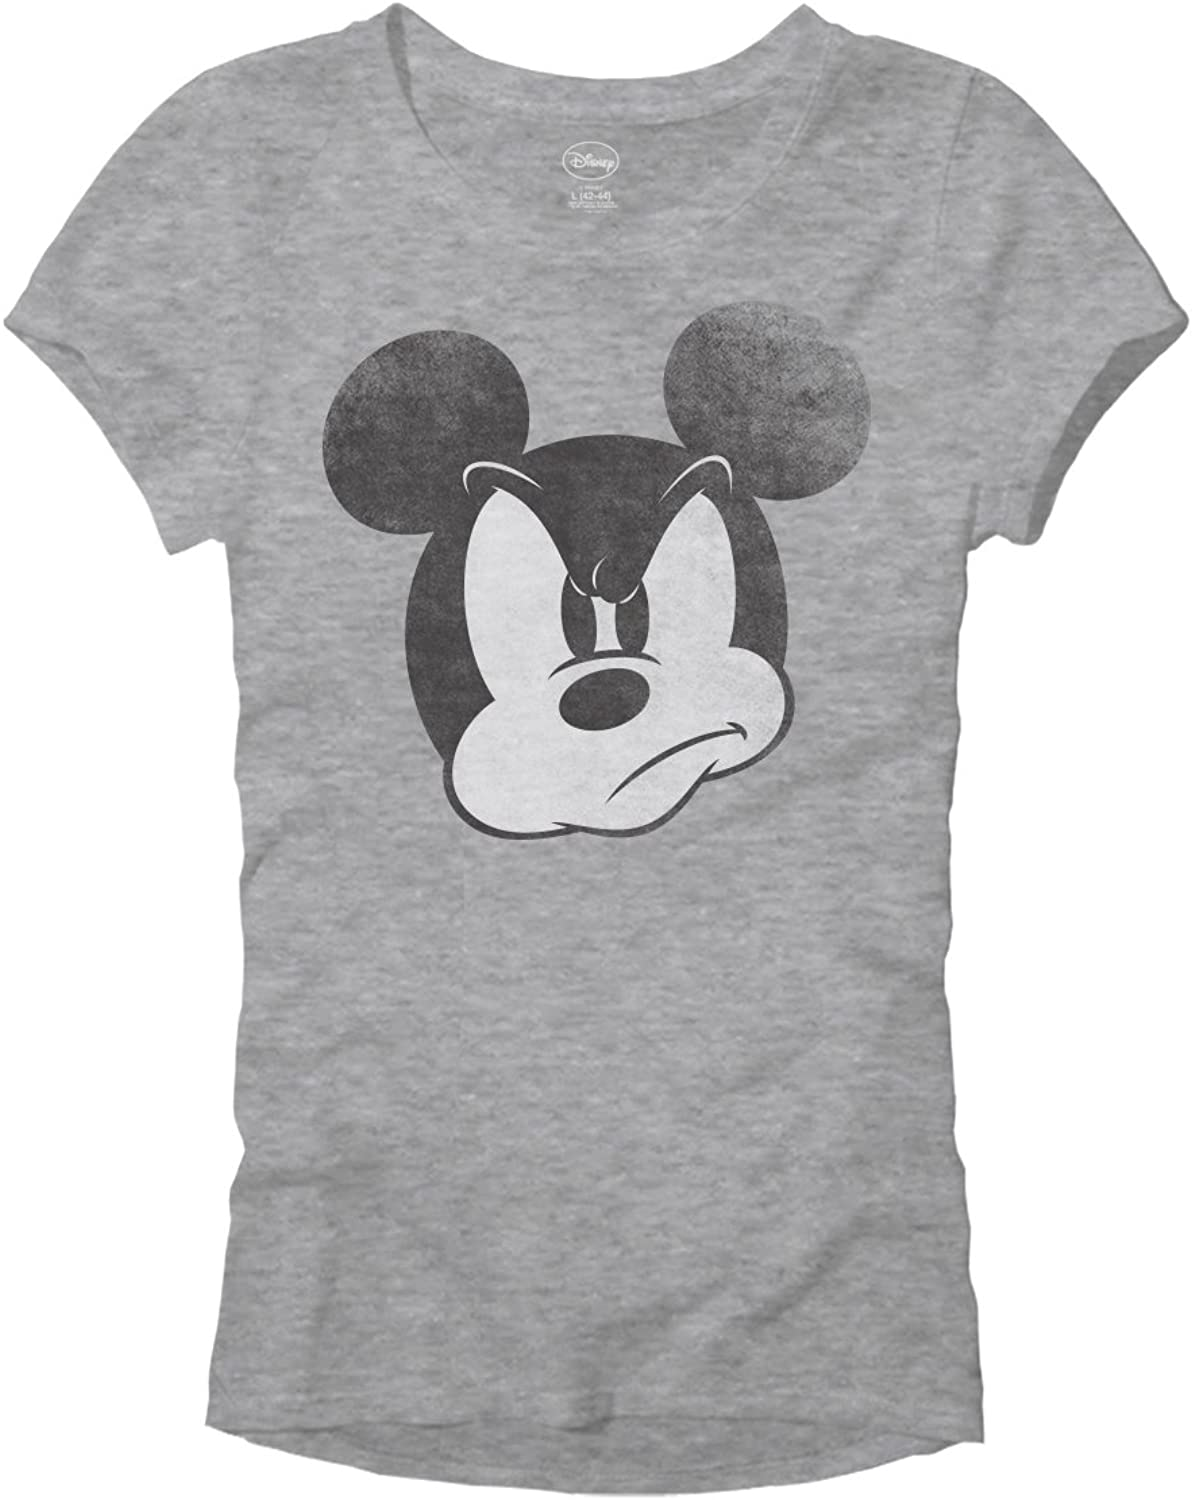 Mad Mickey Mouse Graphic Tee Classic Vintage Disneyland World Adult Women's Juniors Slim Fit Graphic Tee T-Shirt